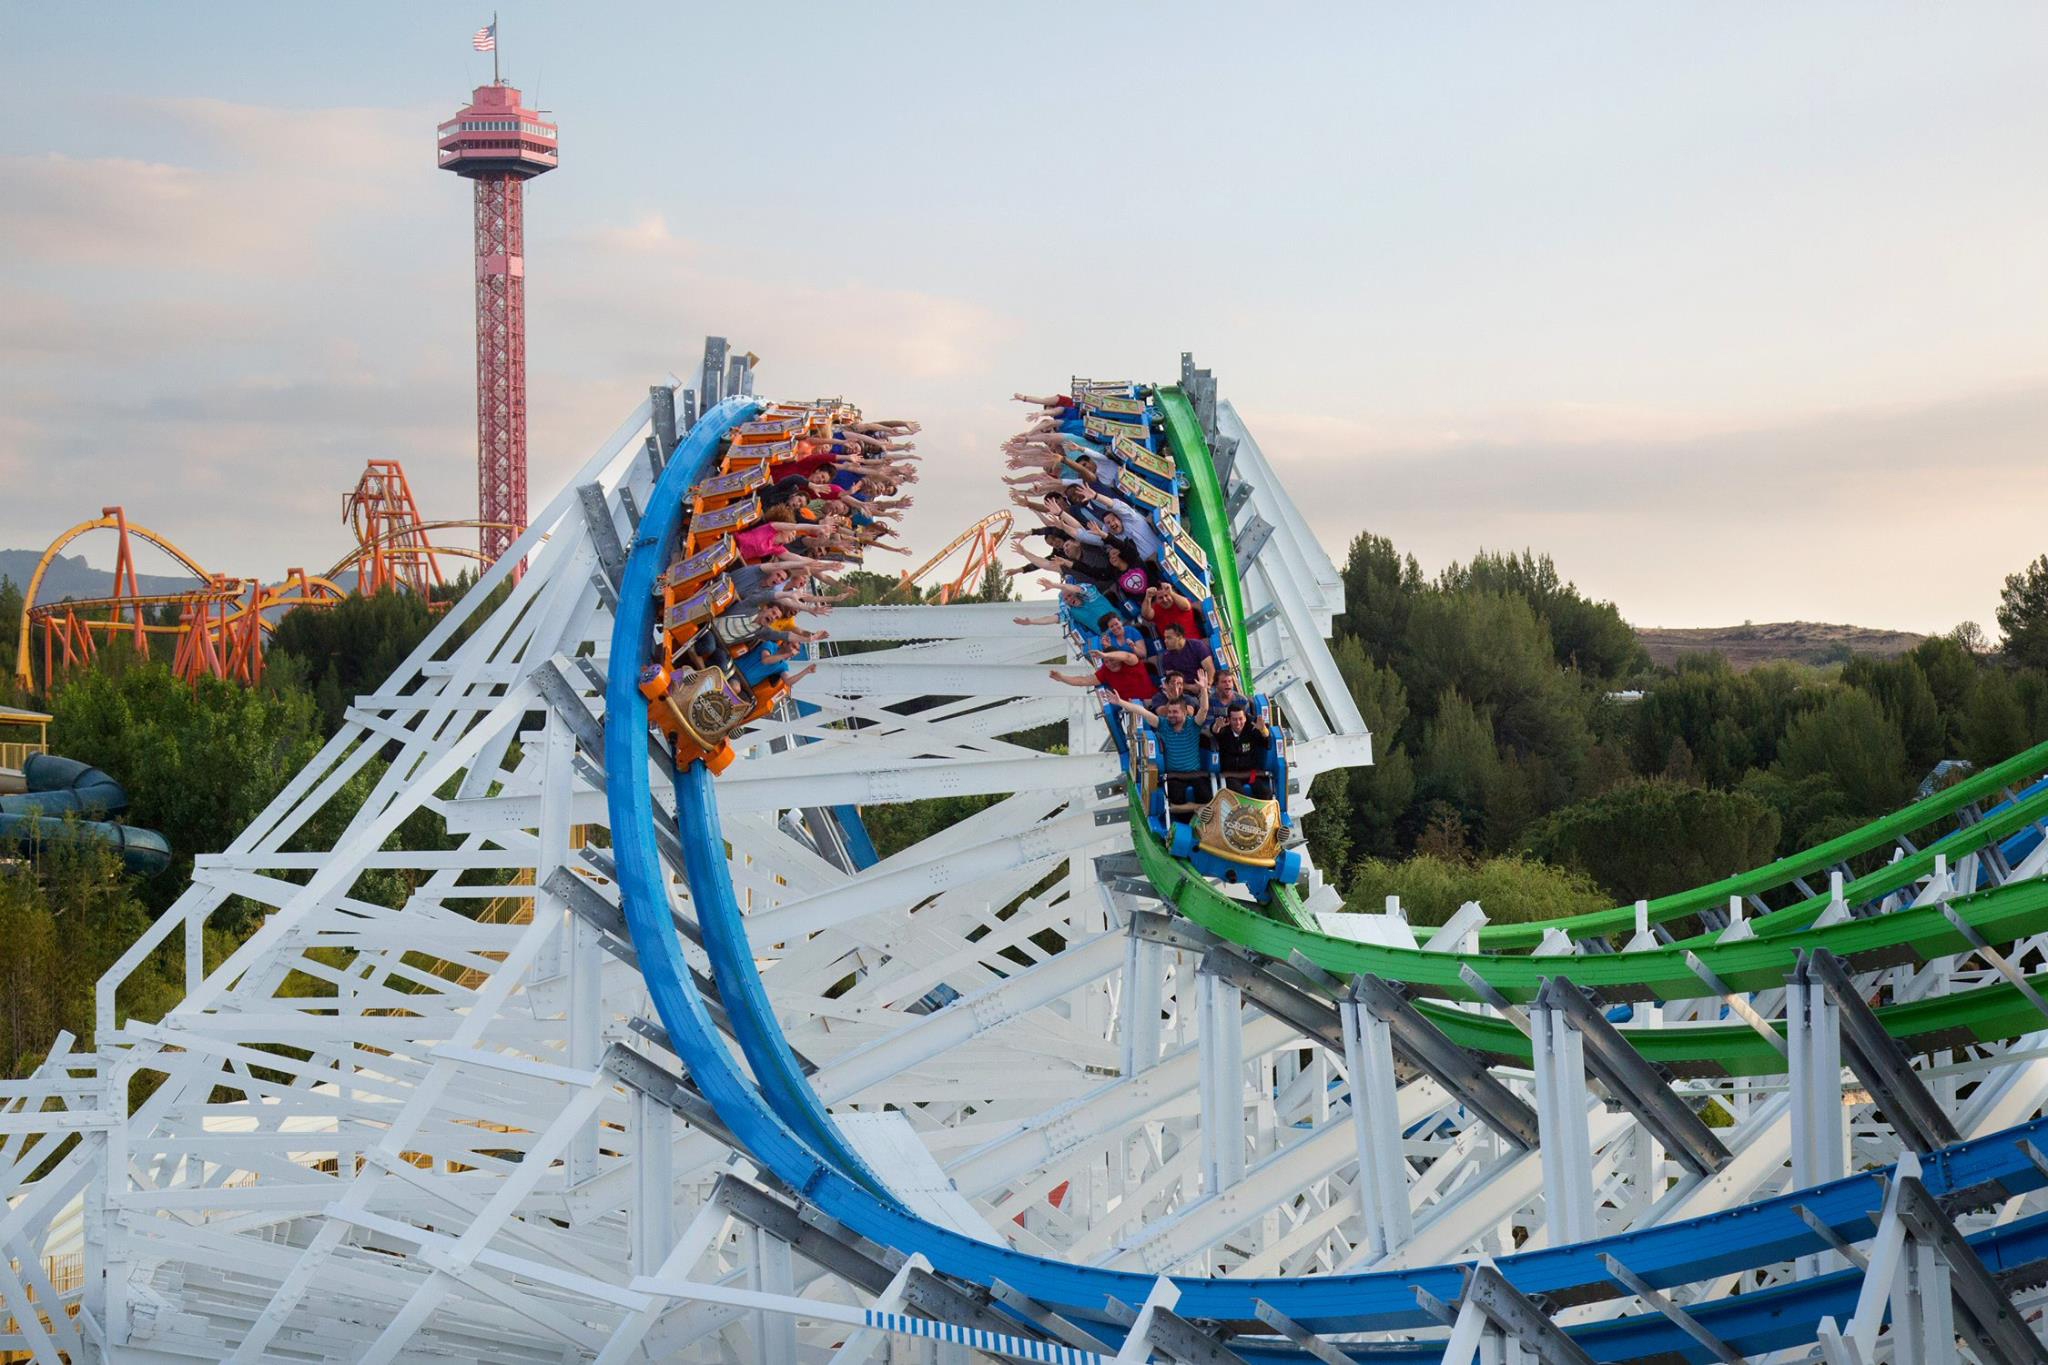 Best amusement parks near NYC from Hersheypark to Six Flags 2048x1365